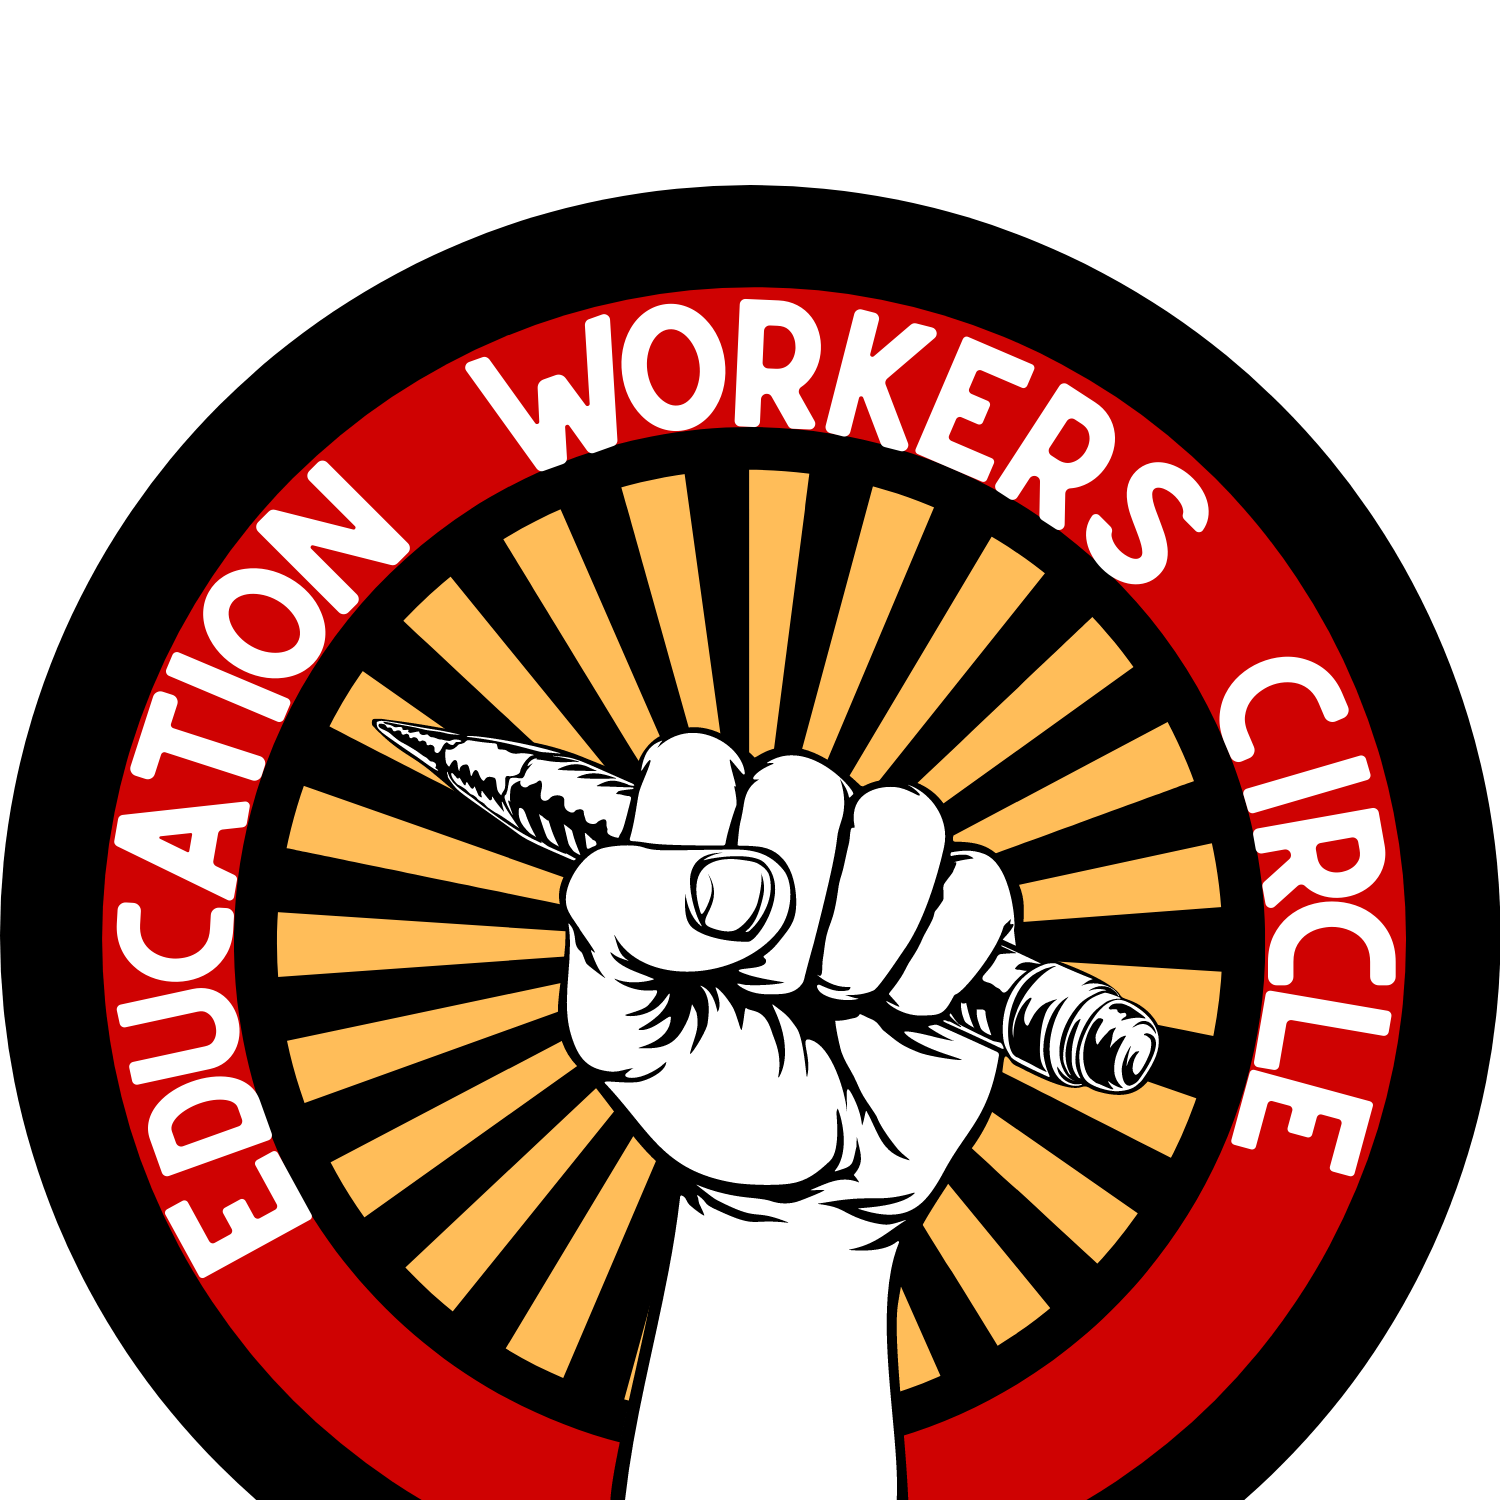 education_workers_circle